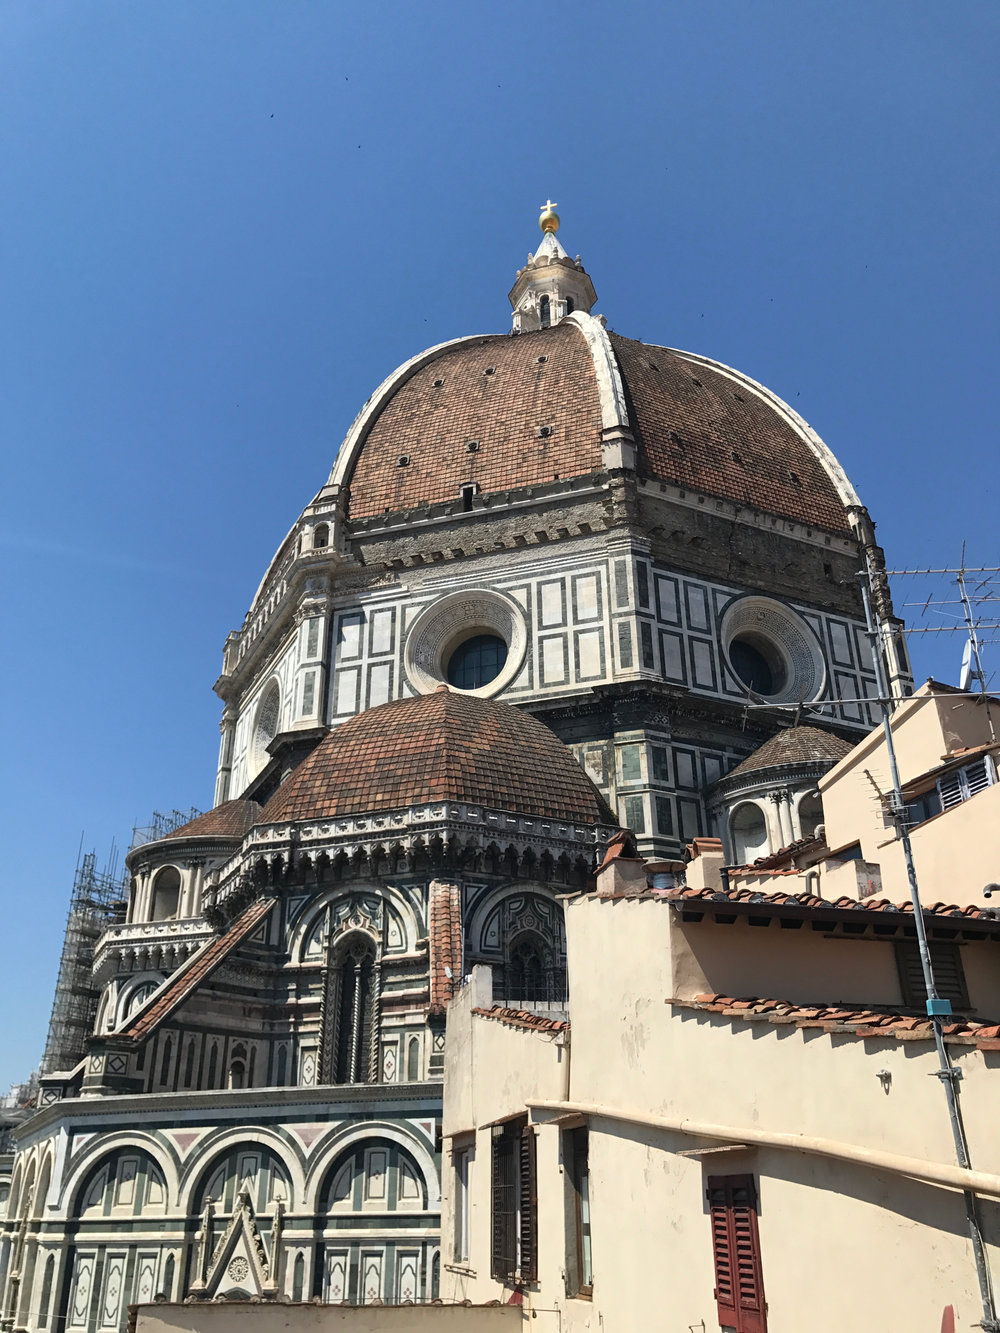 the duomo from the outside. everything the about the architecture and style of buildings and cathedrals in florence is so much different than anywhere we've been!